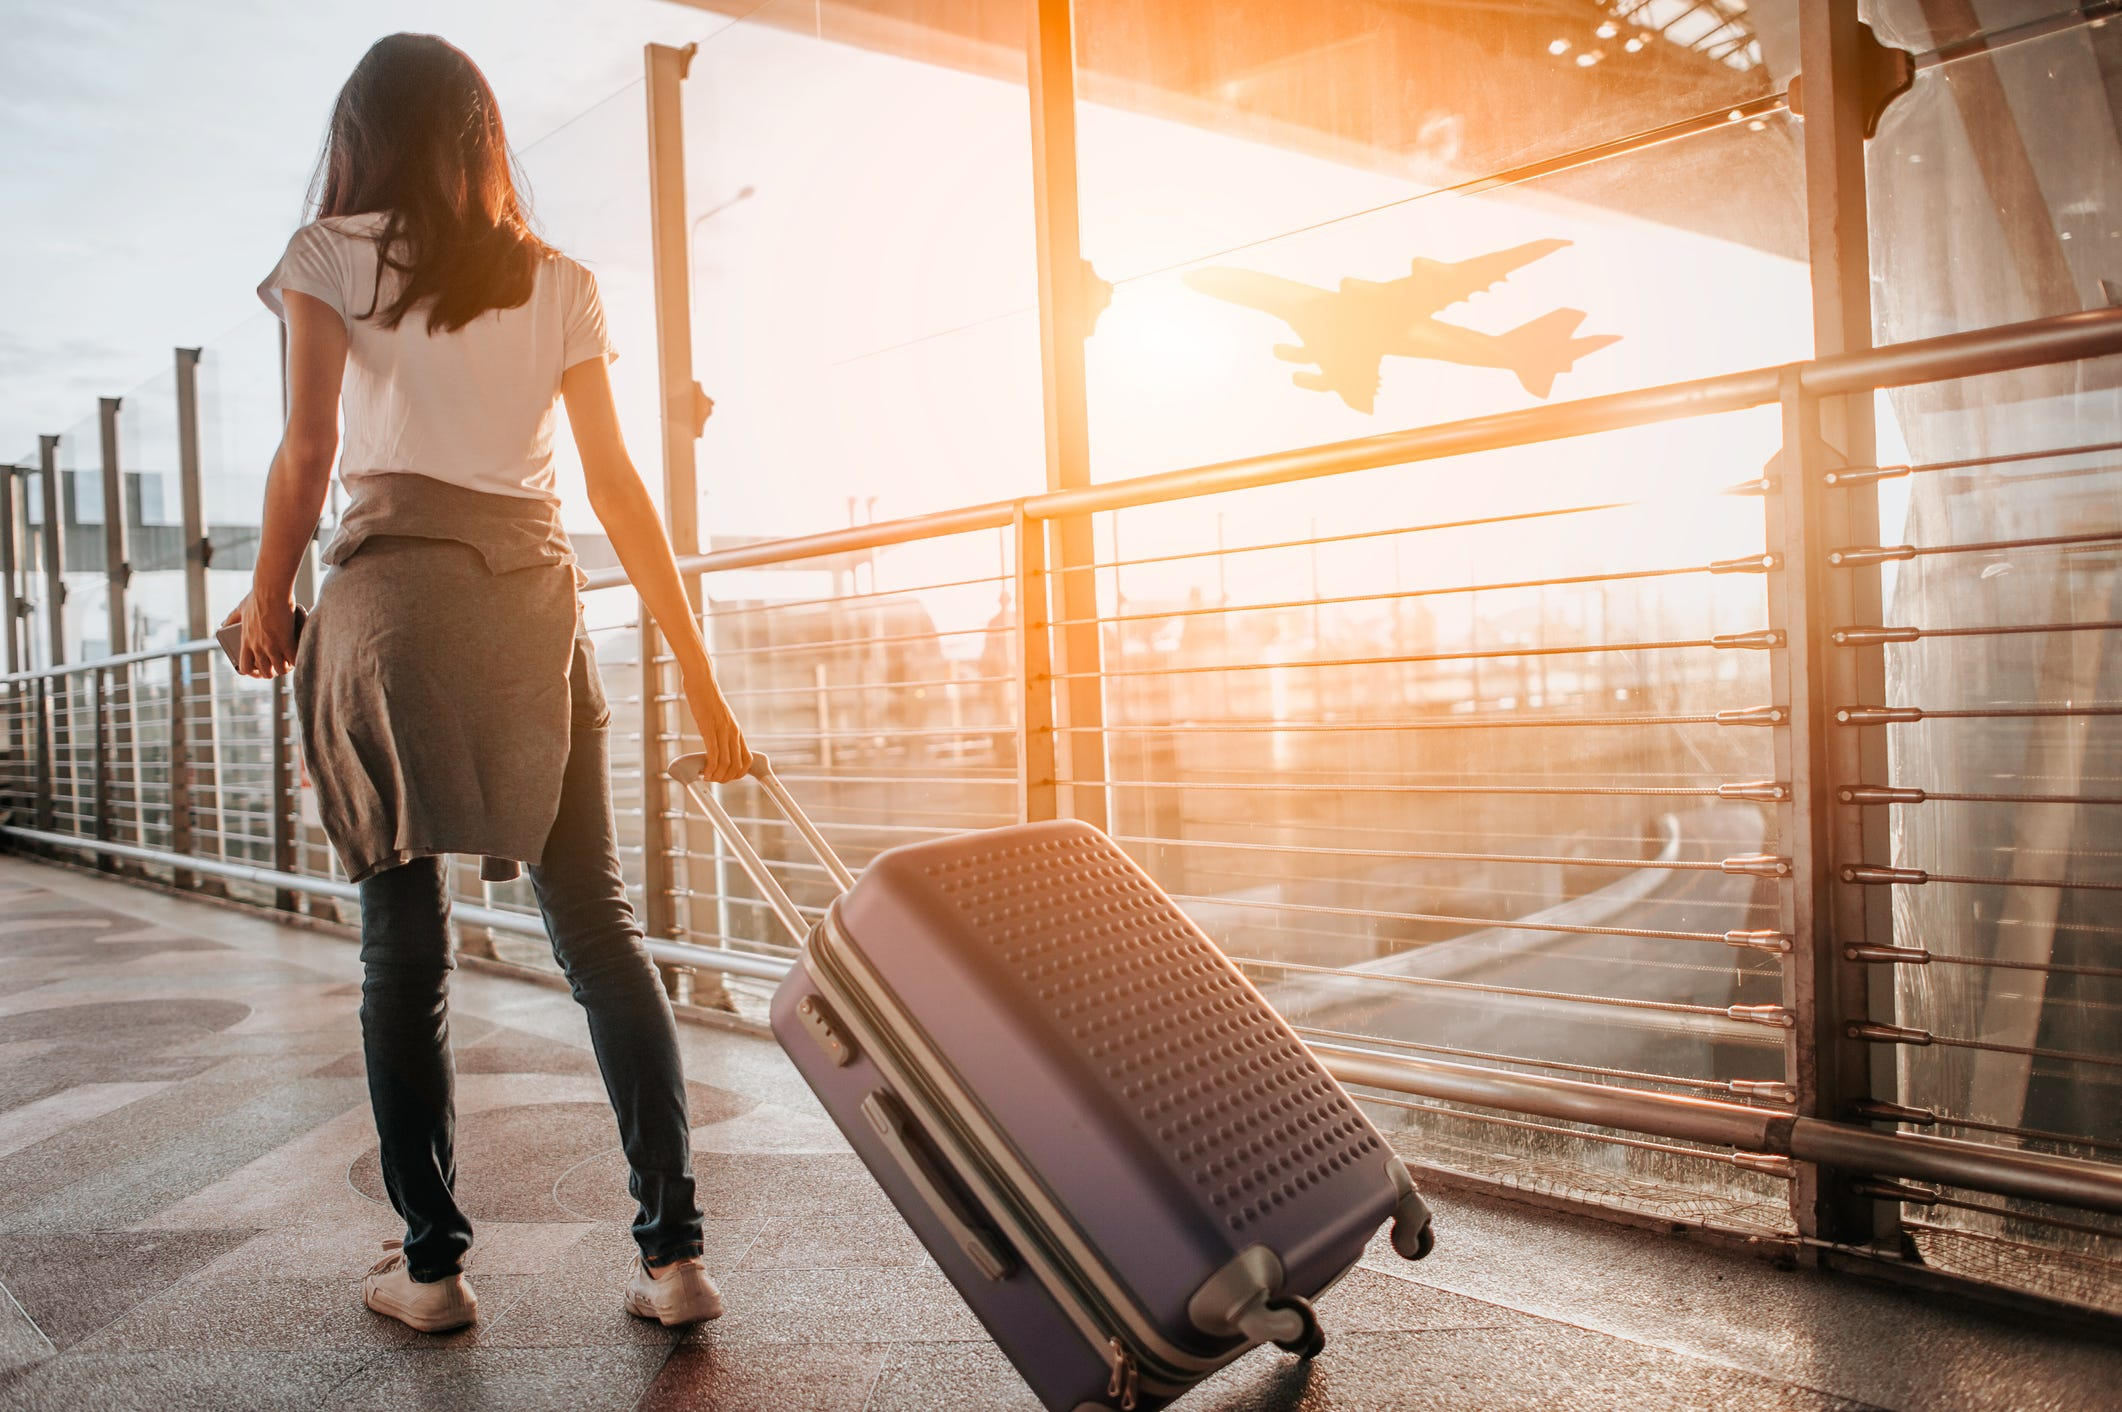 Will the travel industry heed the COVID-19 pandemic's 'wake-up call' as it recovers?